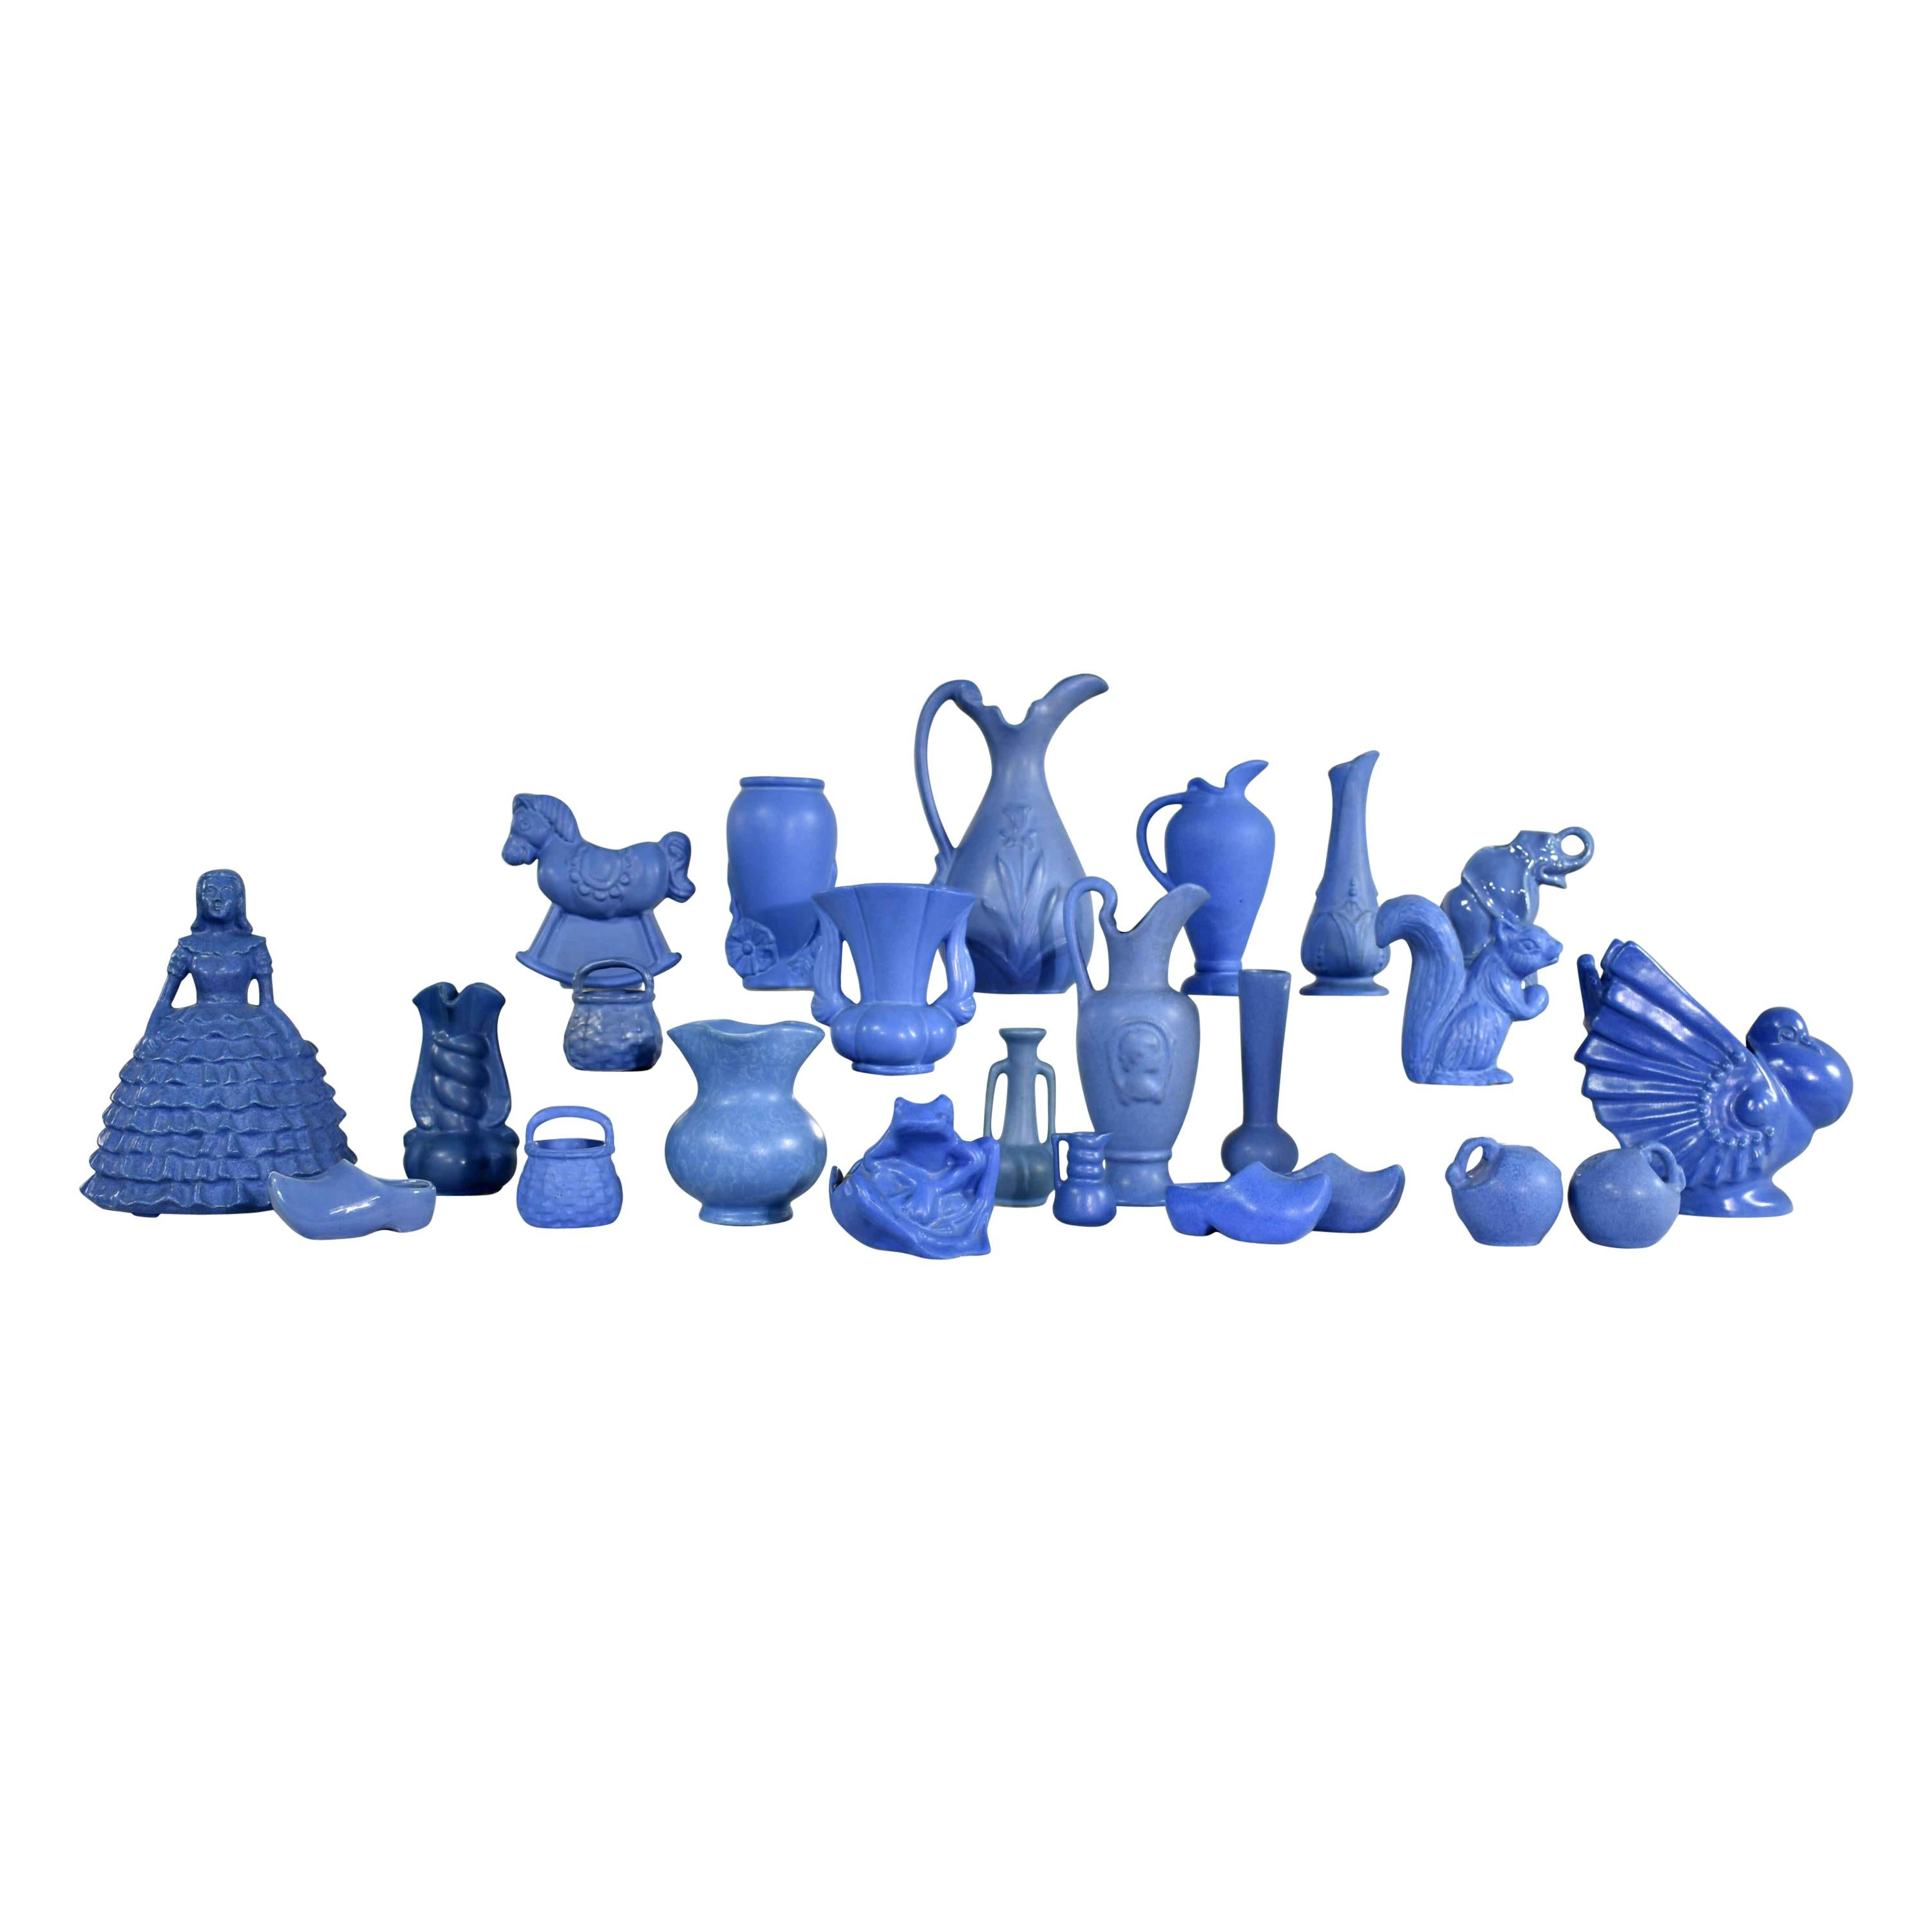 24-Piece Collection of Blue Niloak Midcentury Pottery